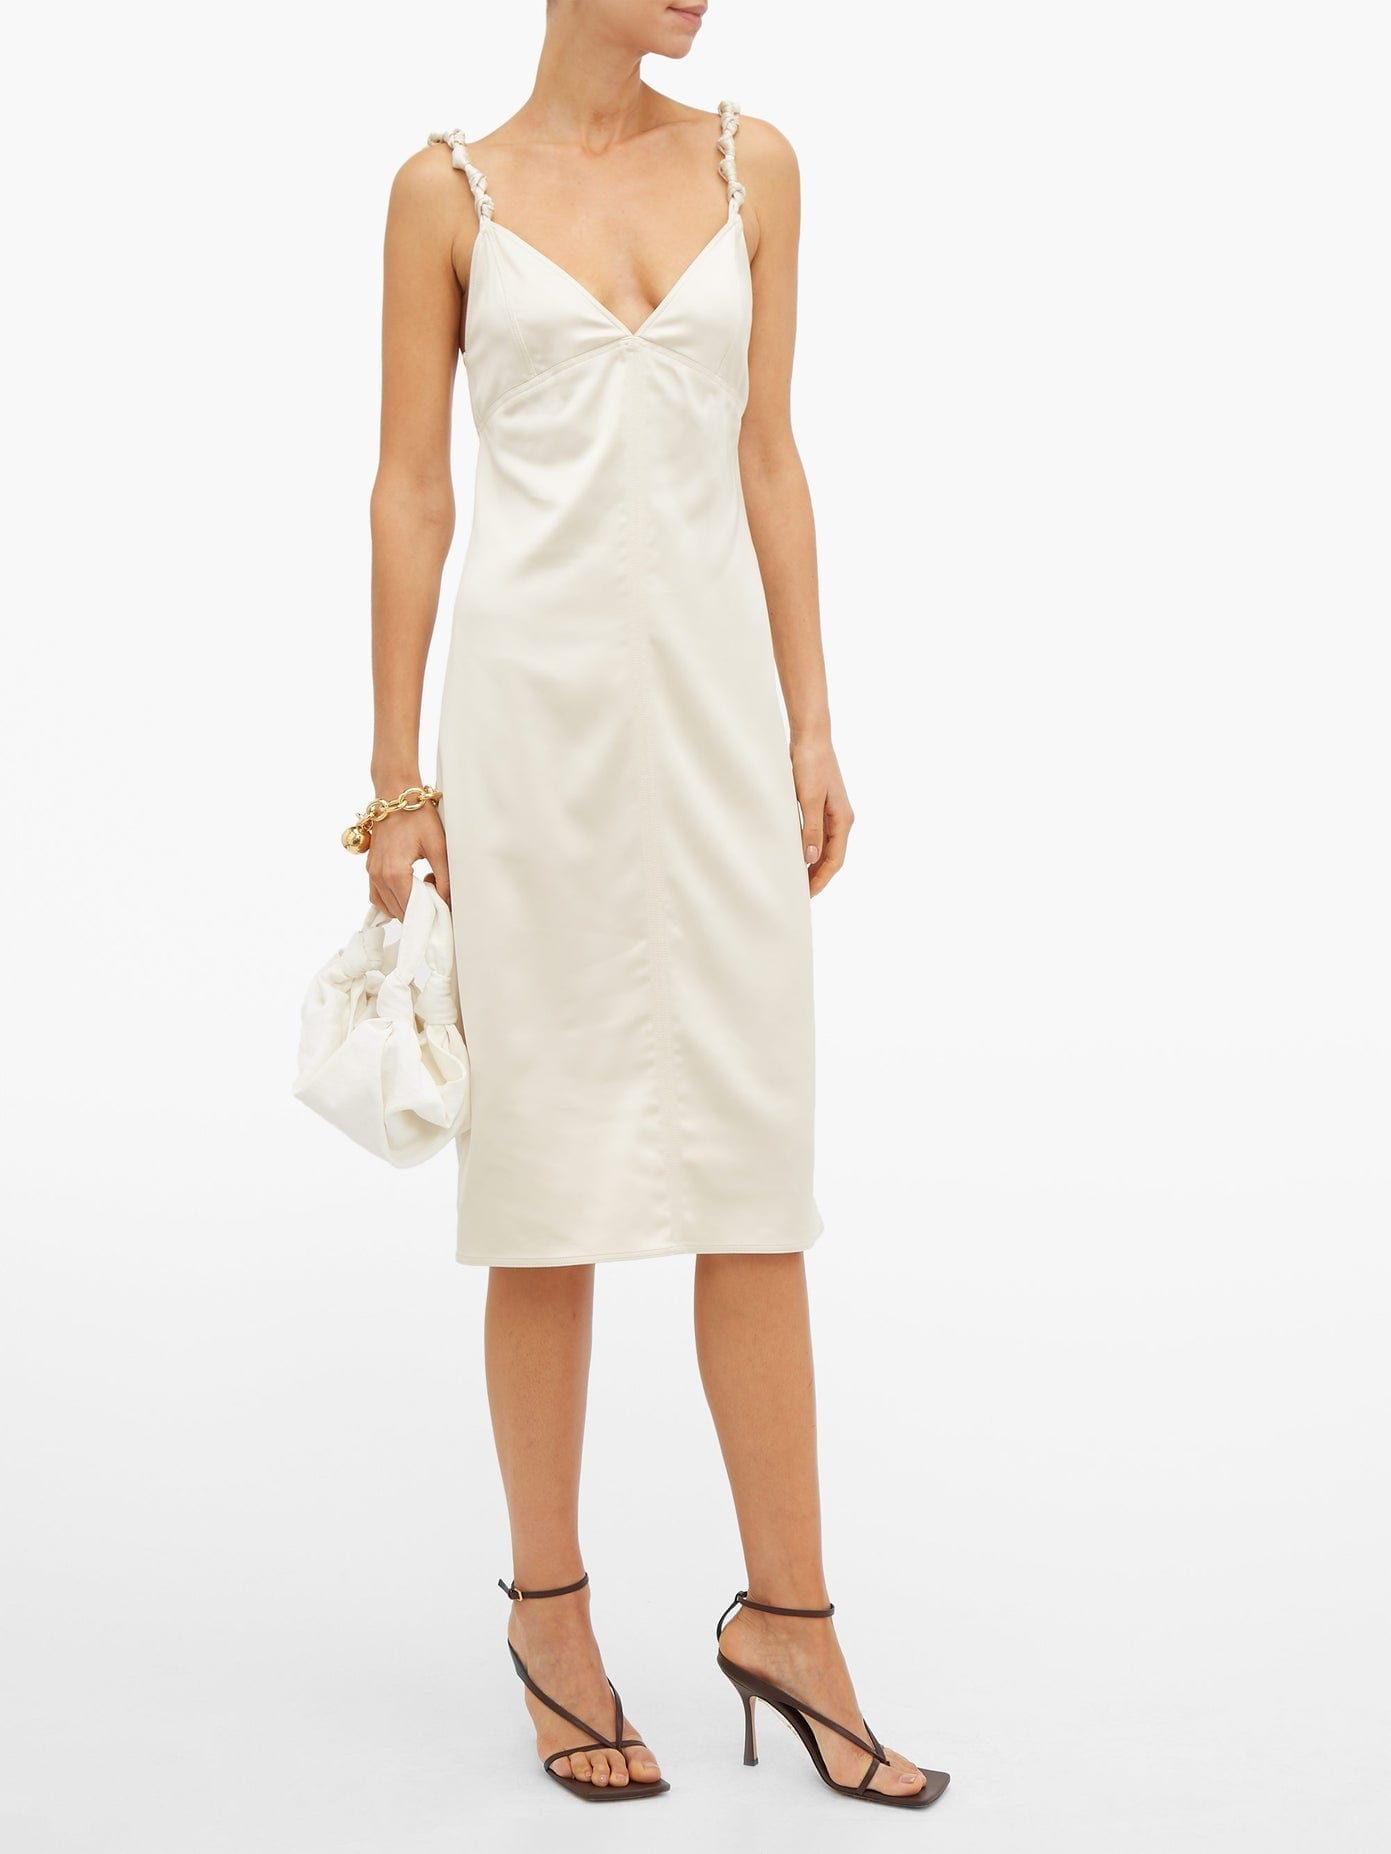 BOTTEGA VENETA Knotted-Strap Satin Pencil Dress